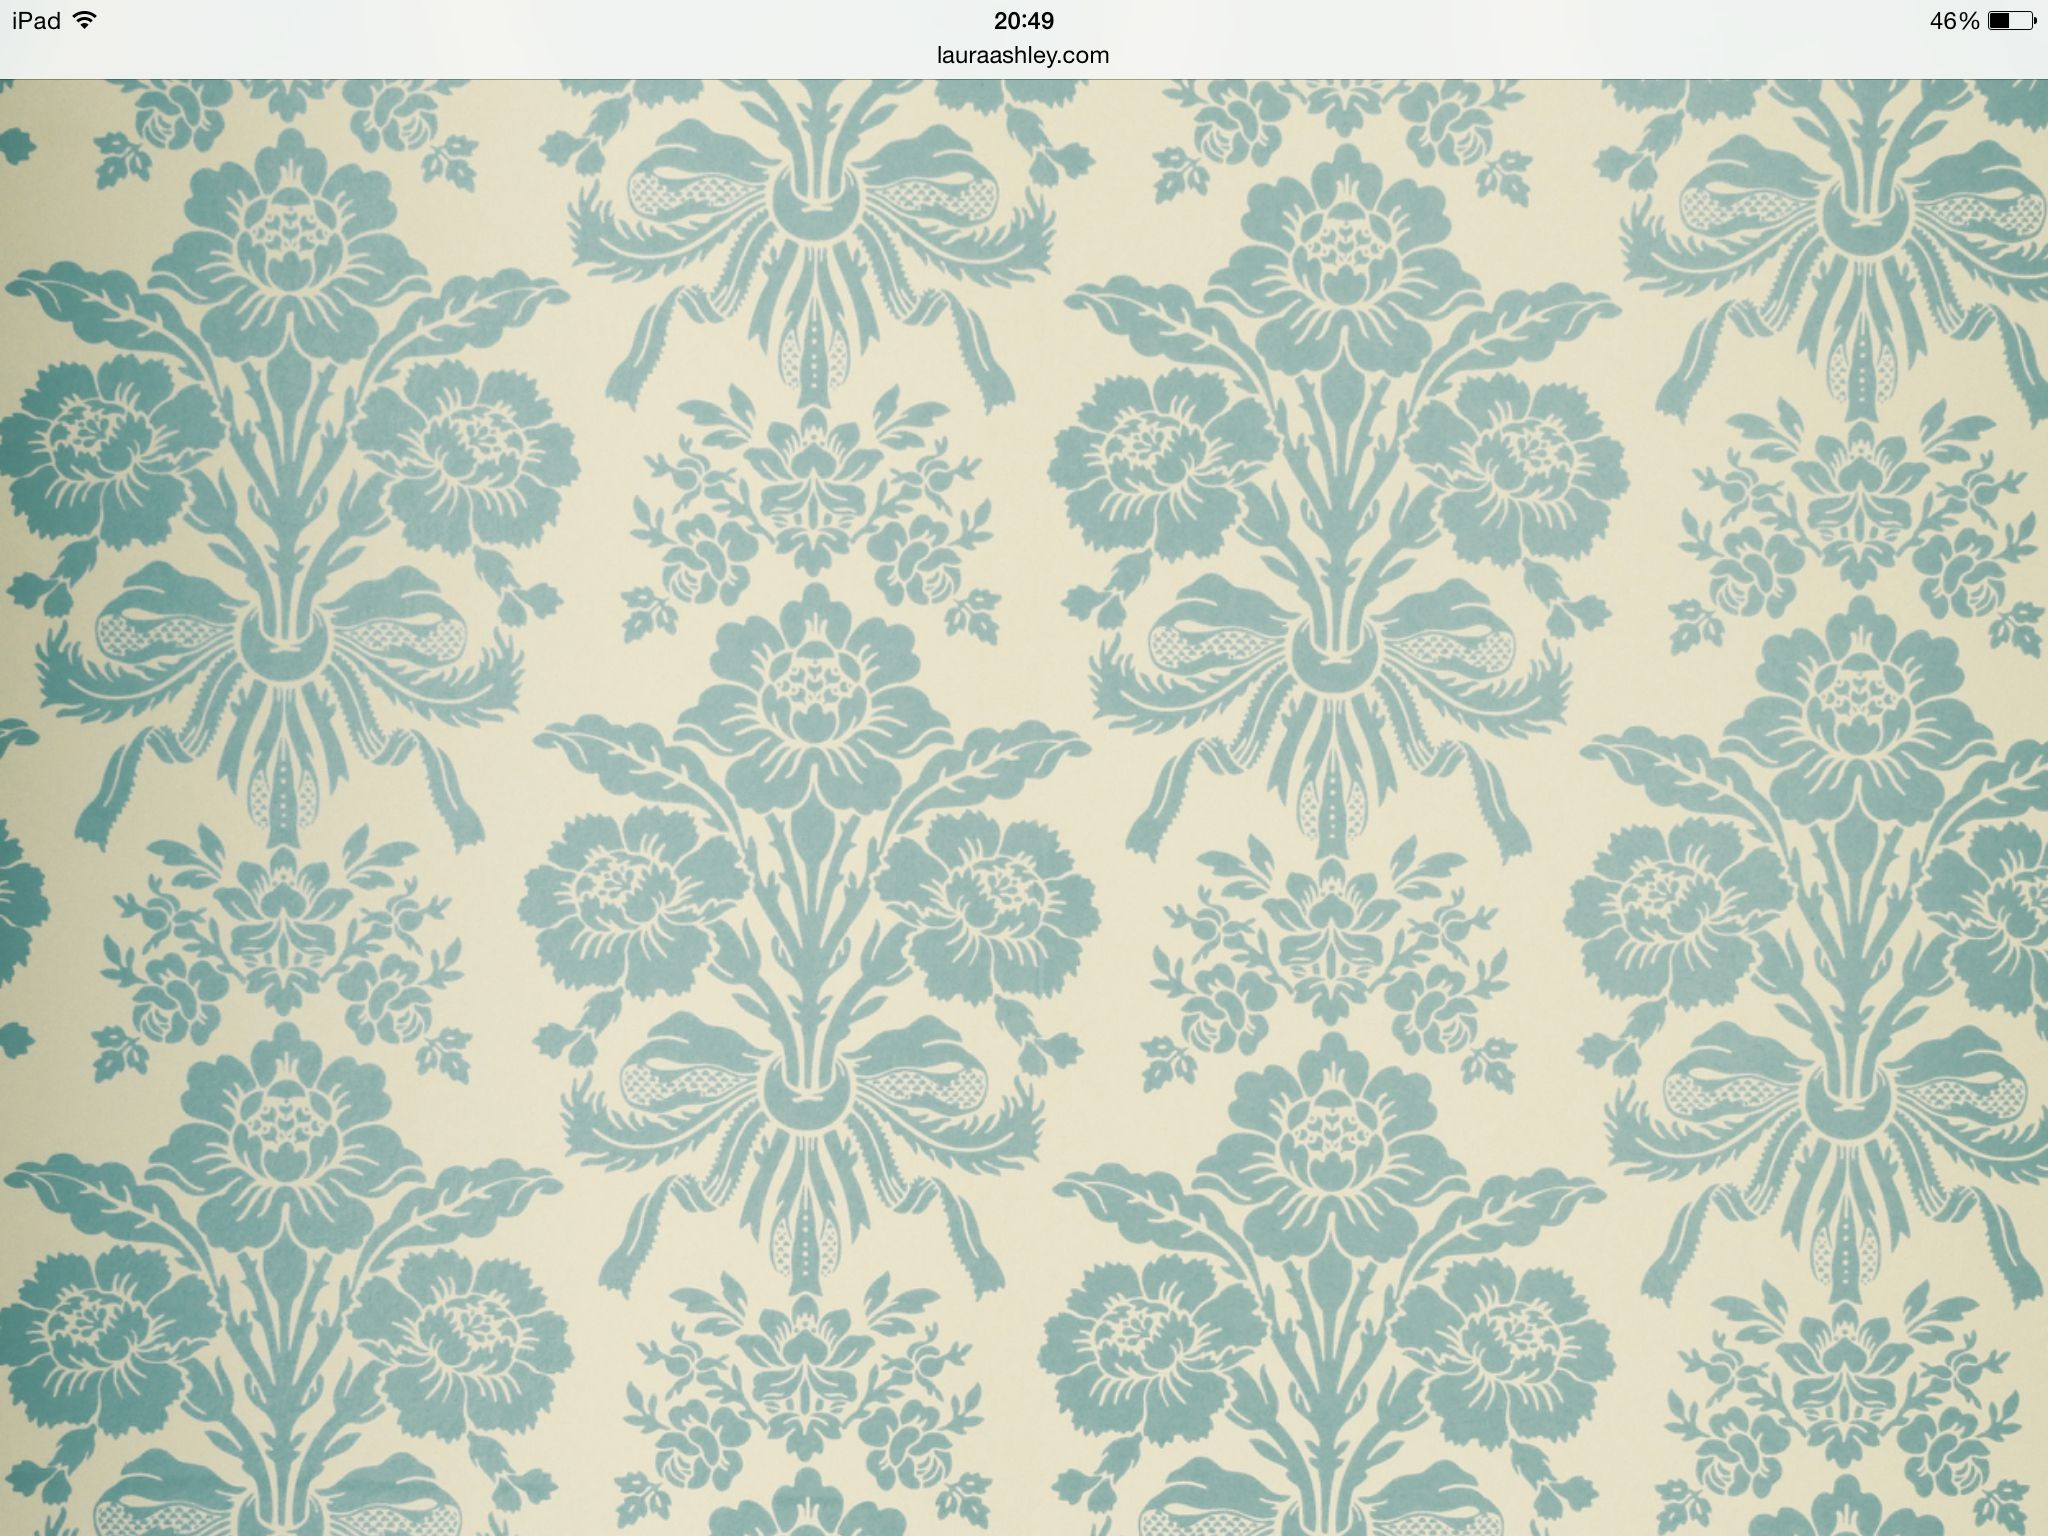 Pin by Mohammed on Patern Damask wallpaper, Teal damask